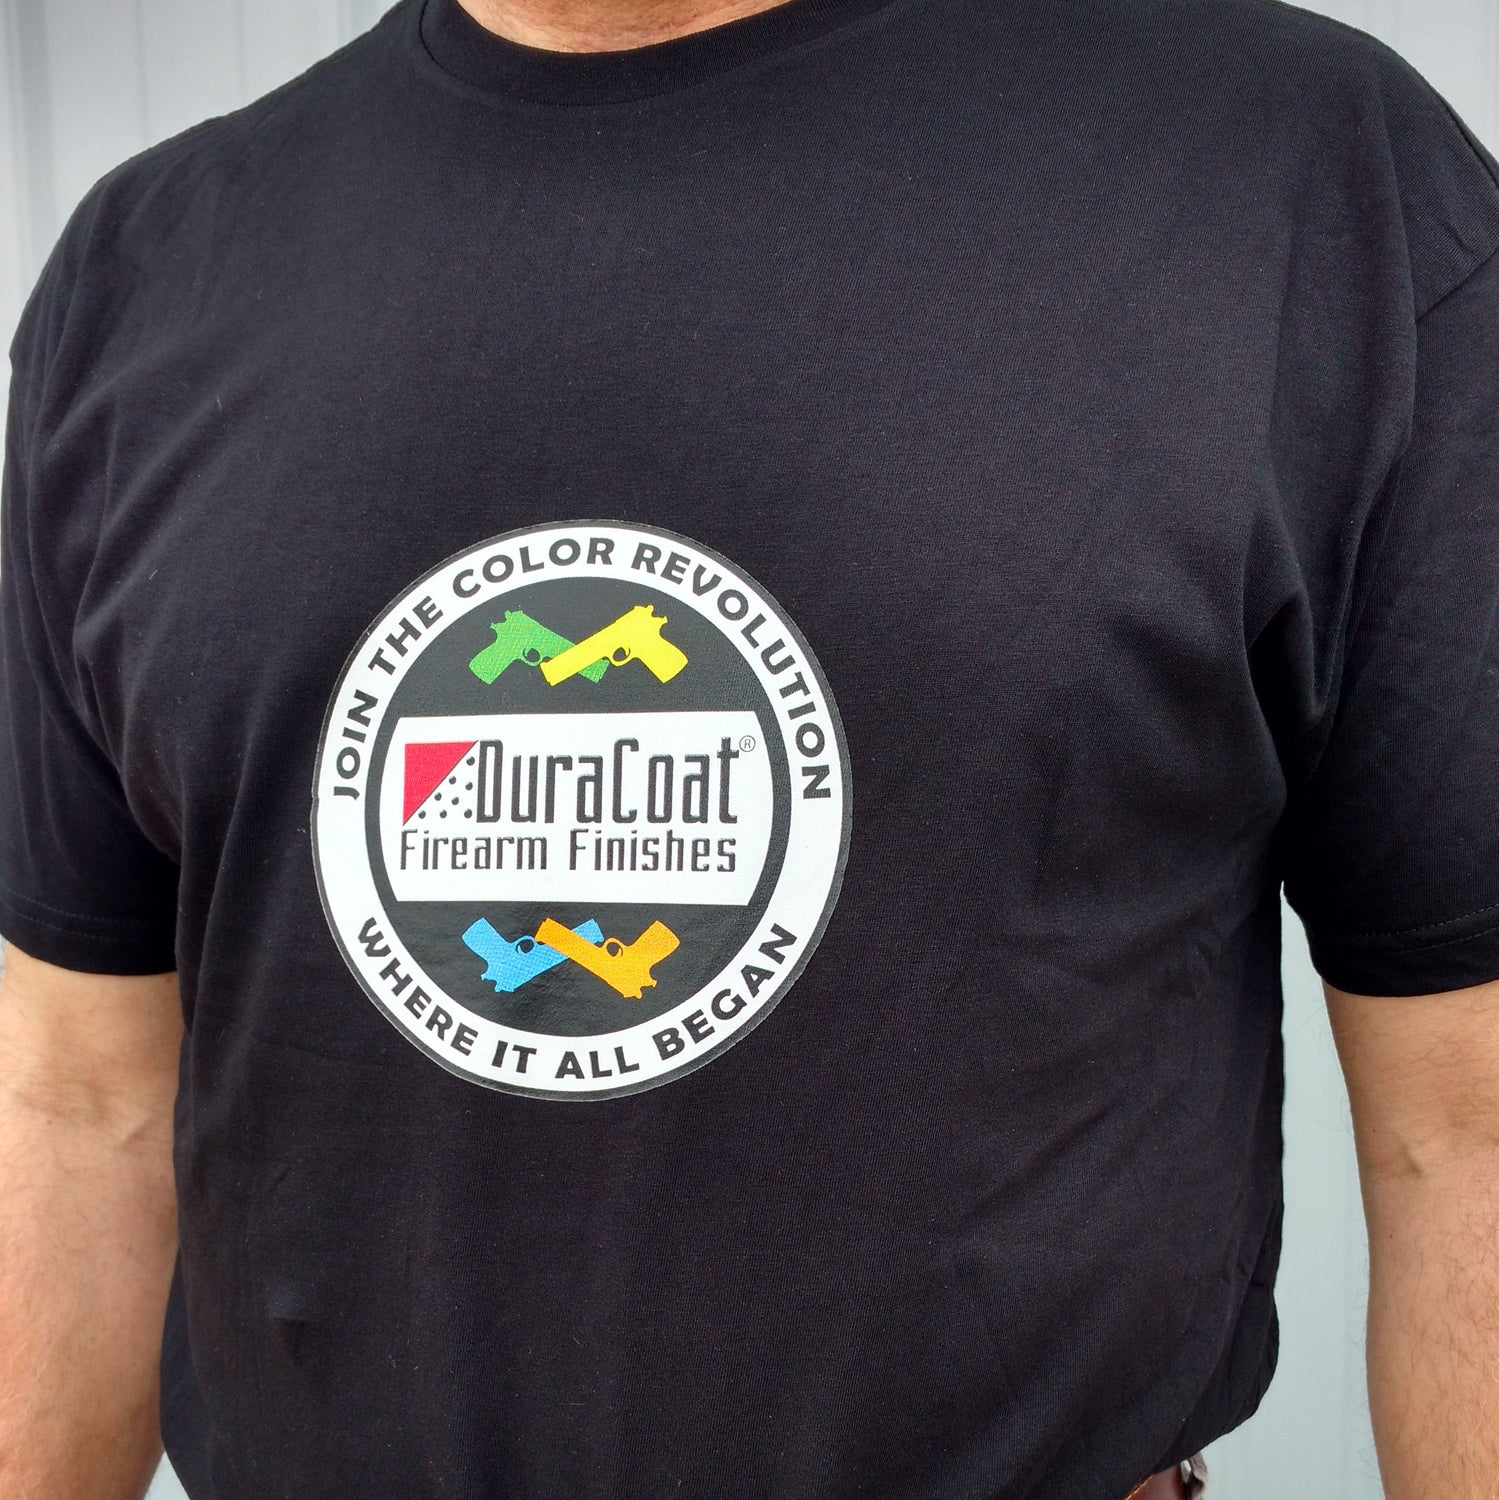 DuraCoat Color Revolution T-Shirts